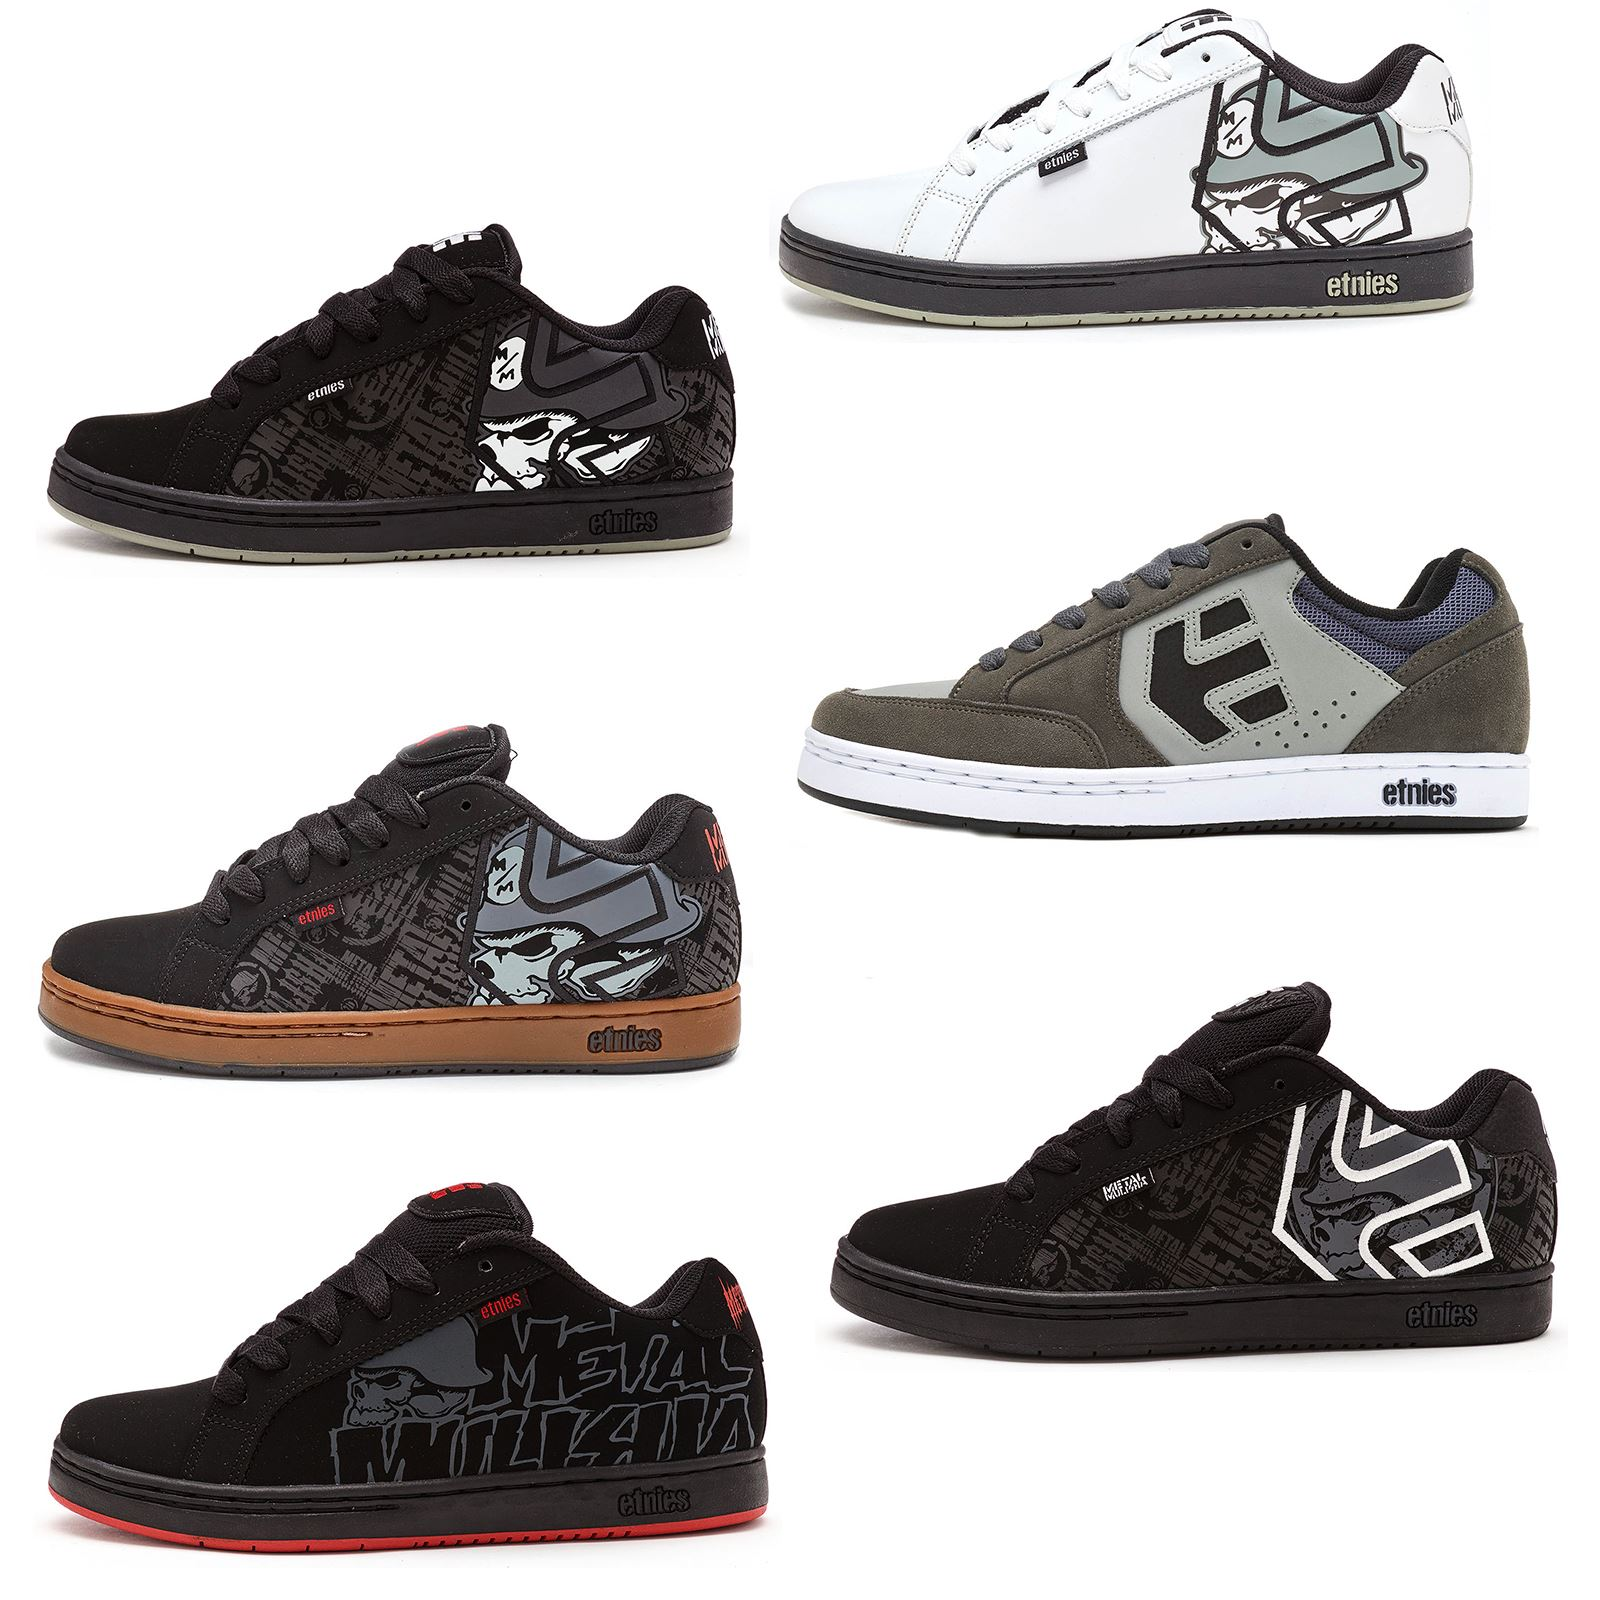 Details about Etnies Metal Mulisha Fader Trainers in Black   White   Gum in  All Sizes 4c88bfdf6